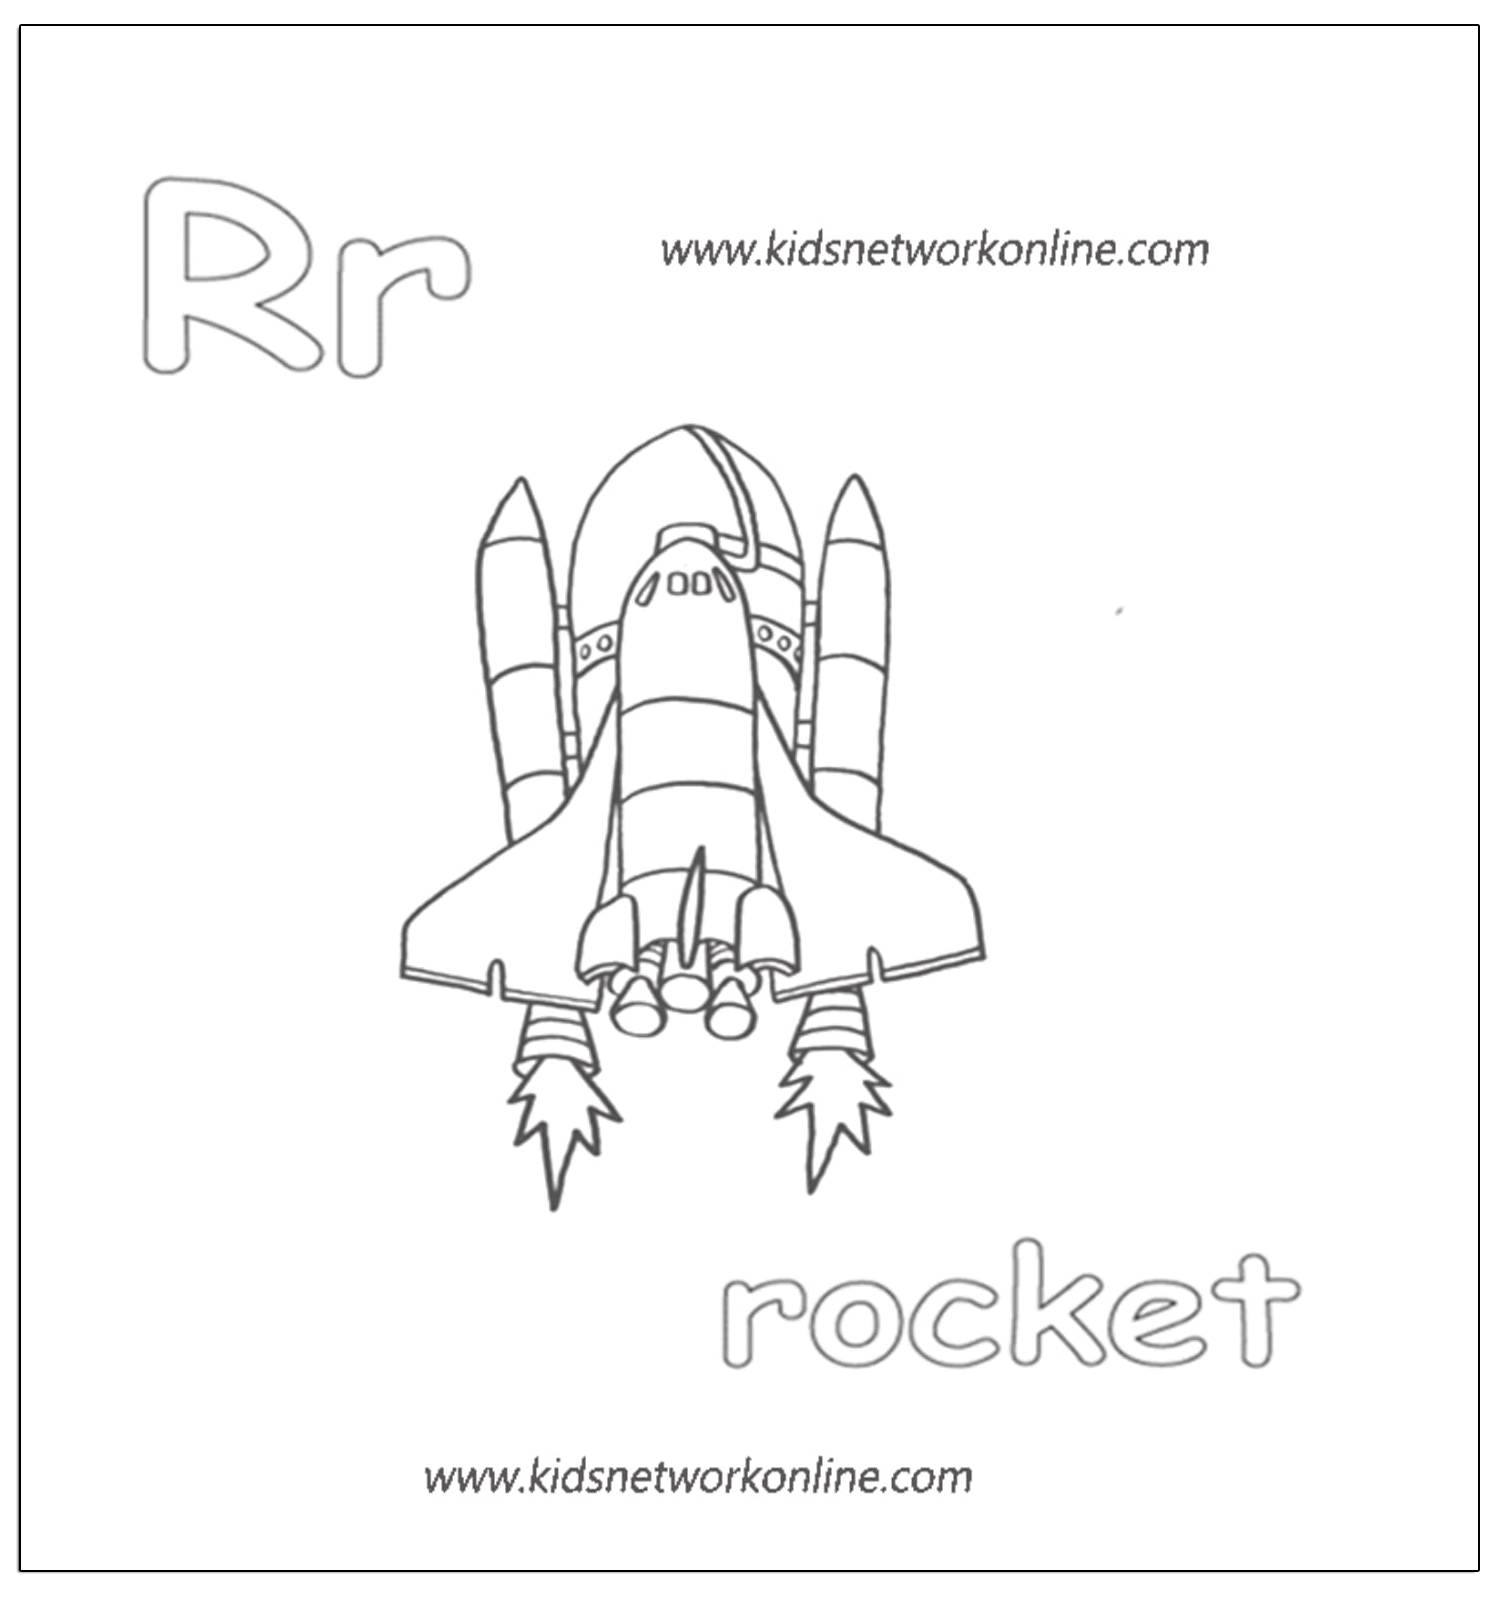 Aphabets Coloring Worksheets